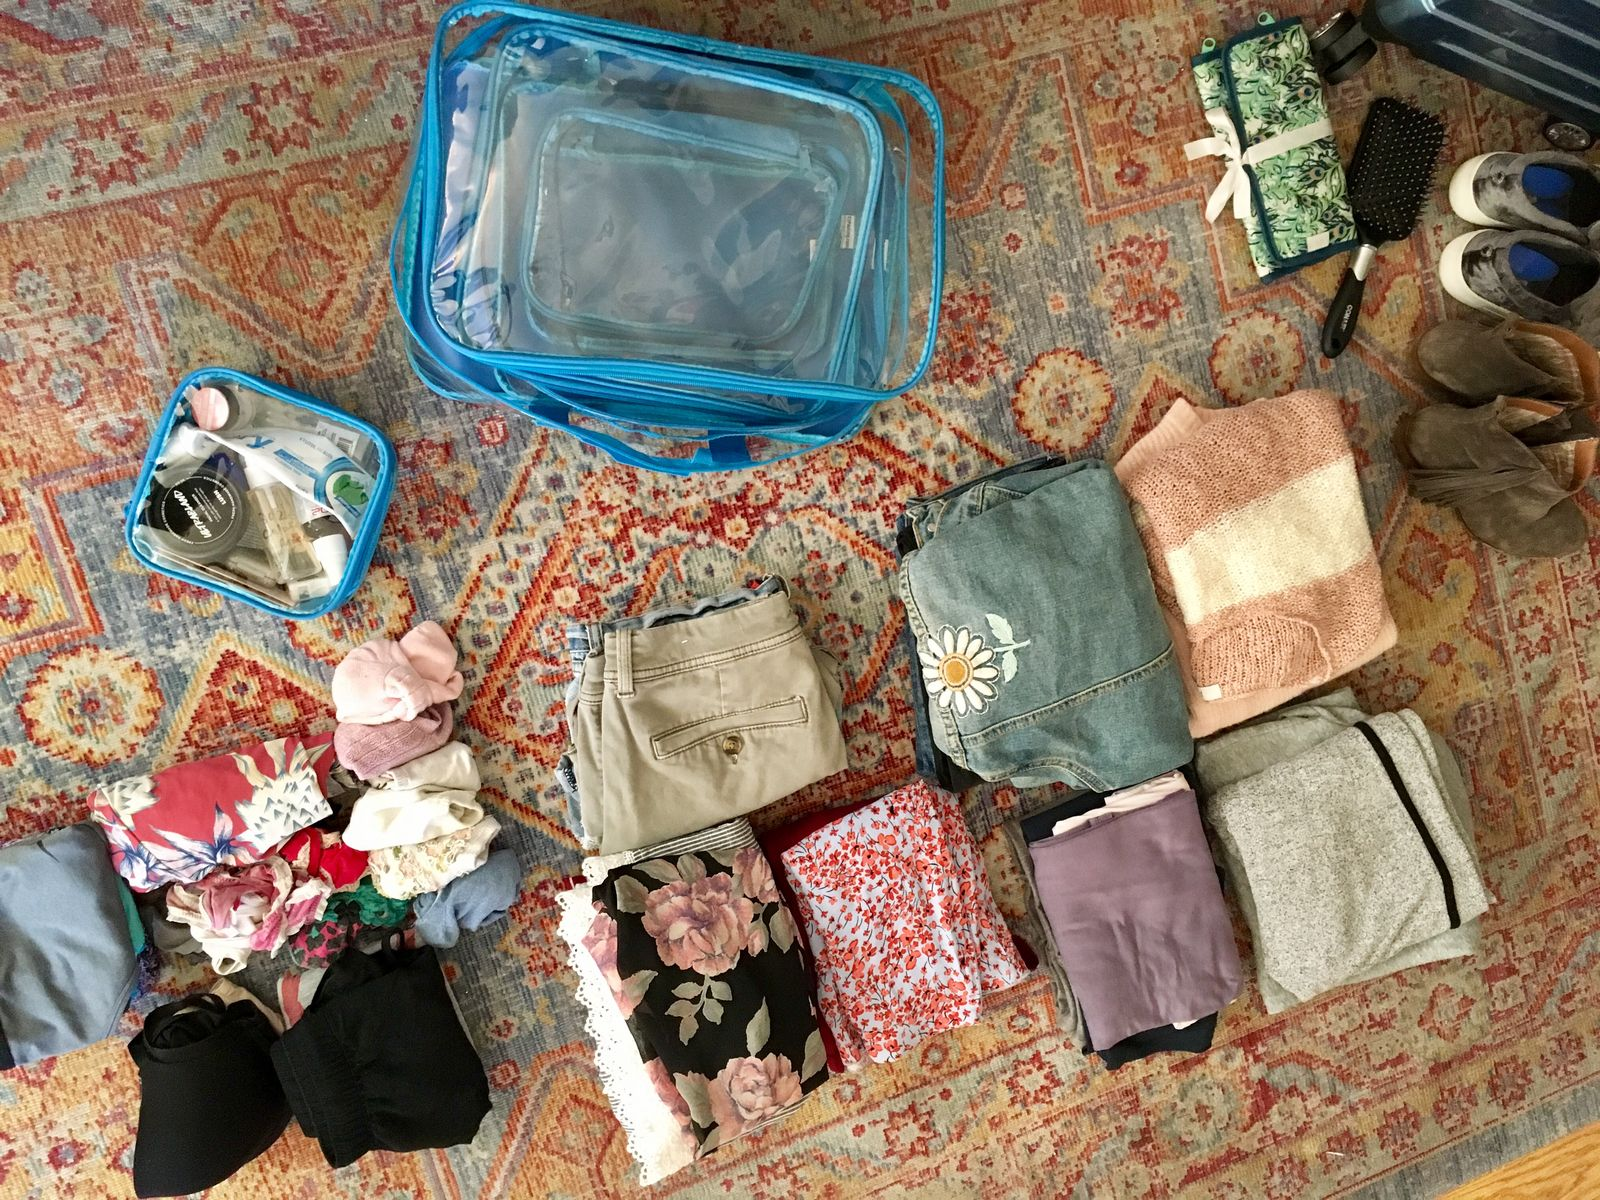 Folded clothes and packing cubes on the floor